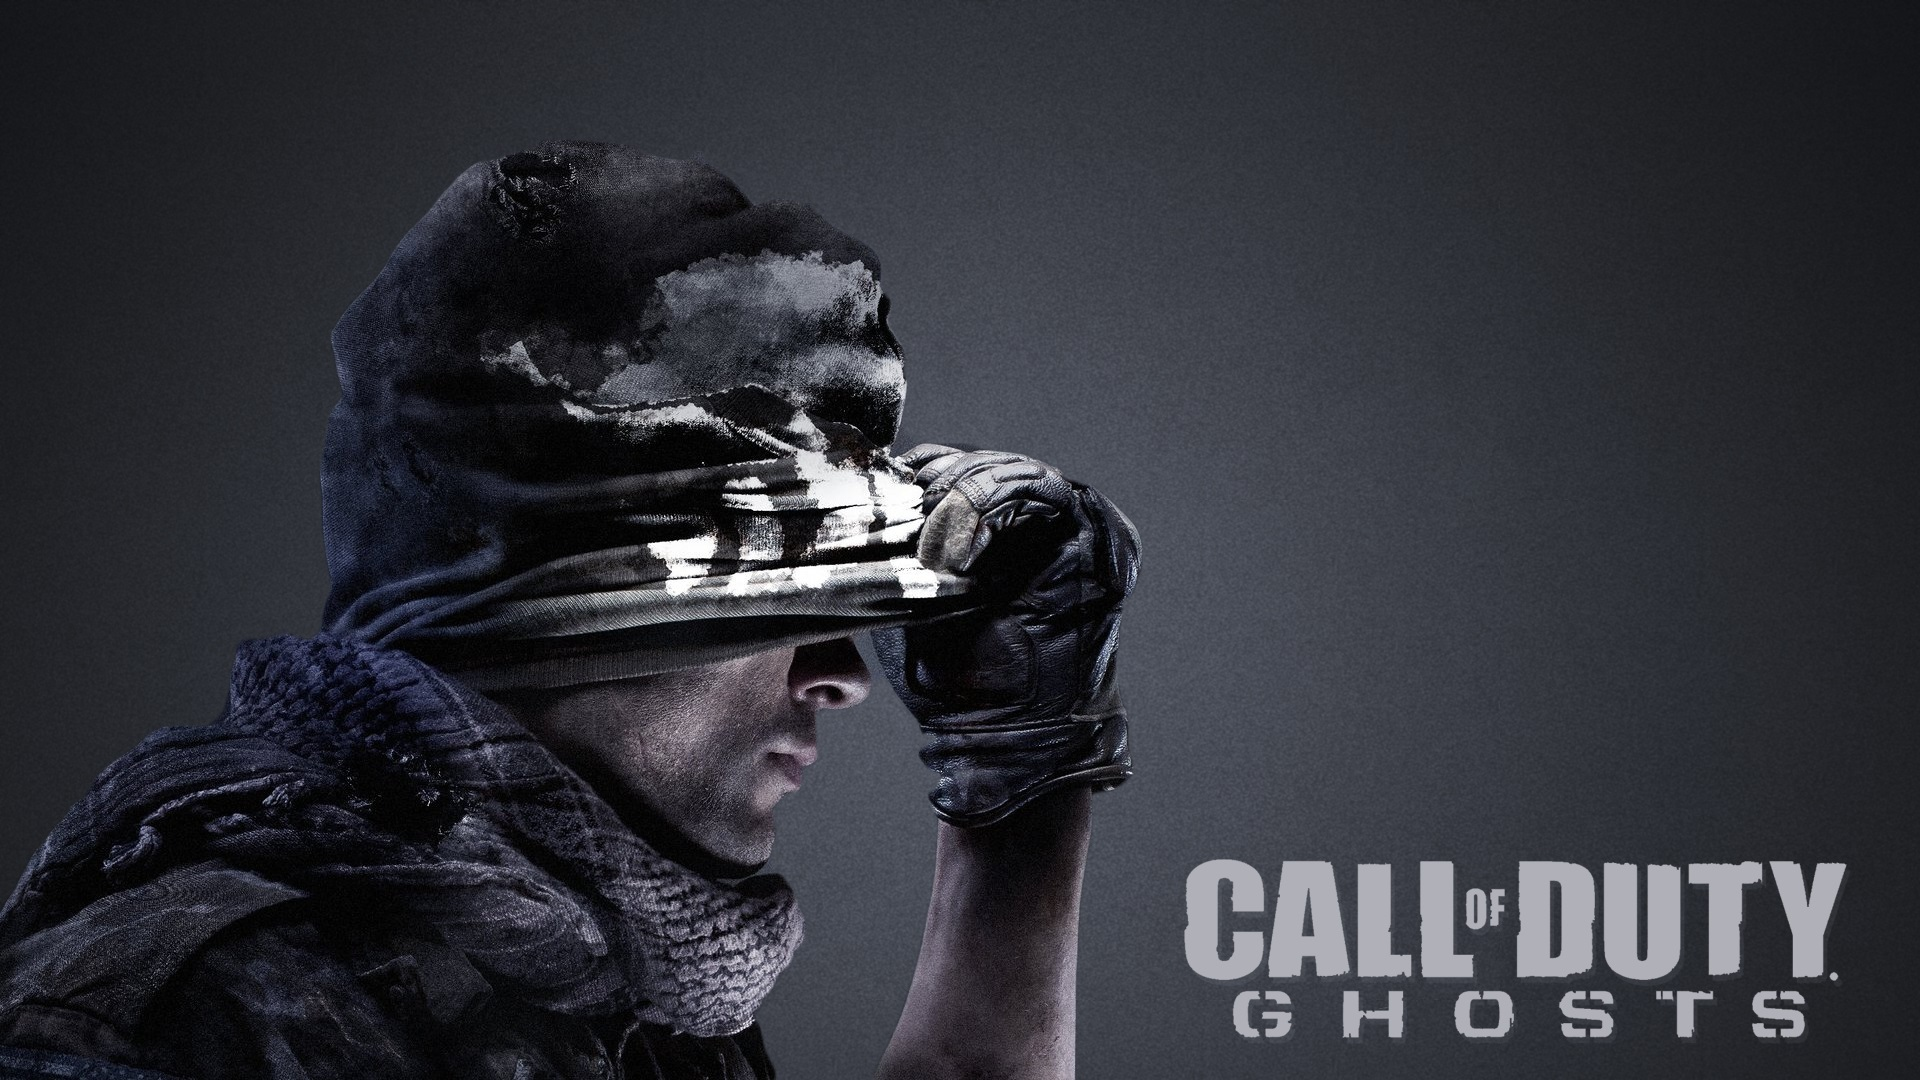 call of duty ghosts wallpaper 1920×1080